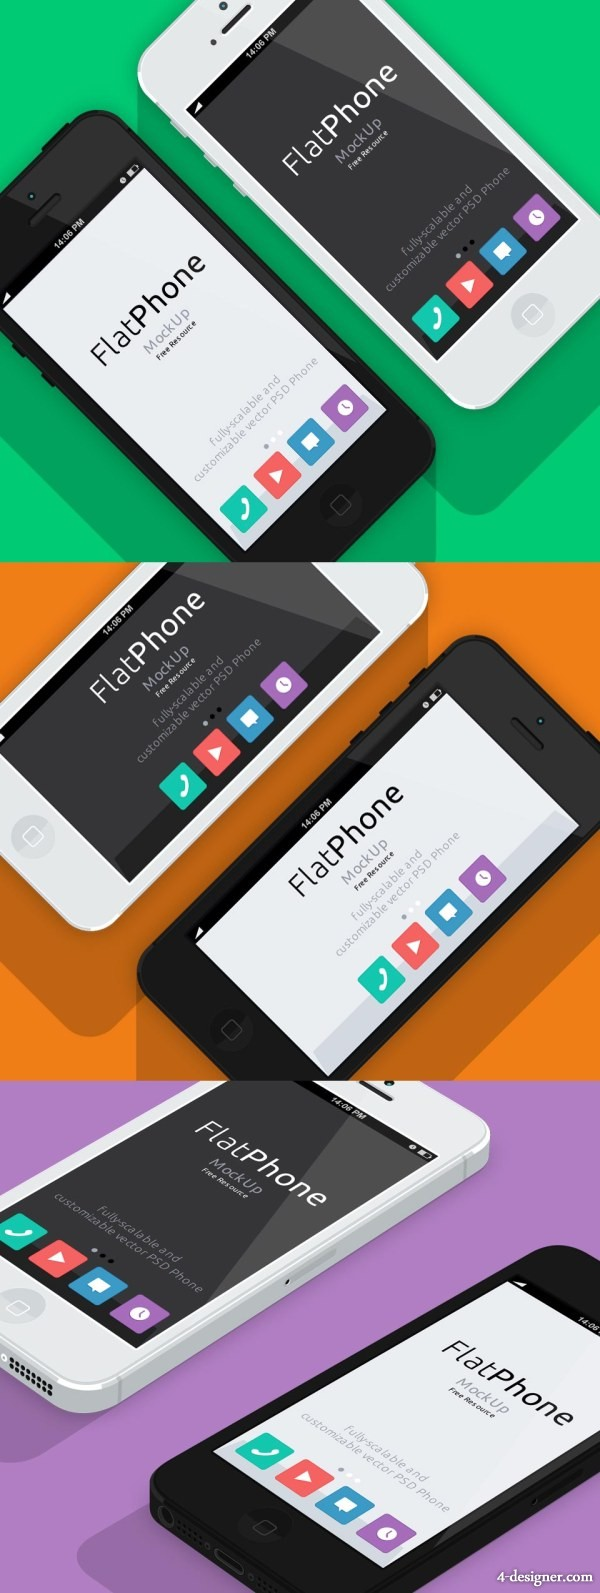 Flat model PSD for iPhone5